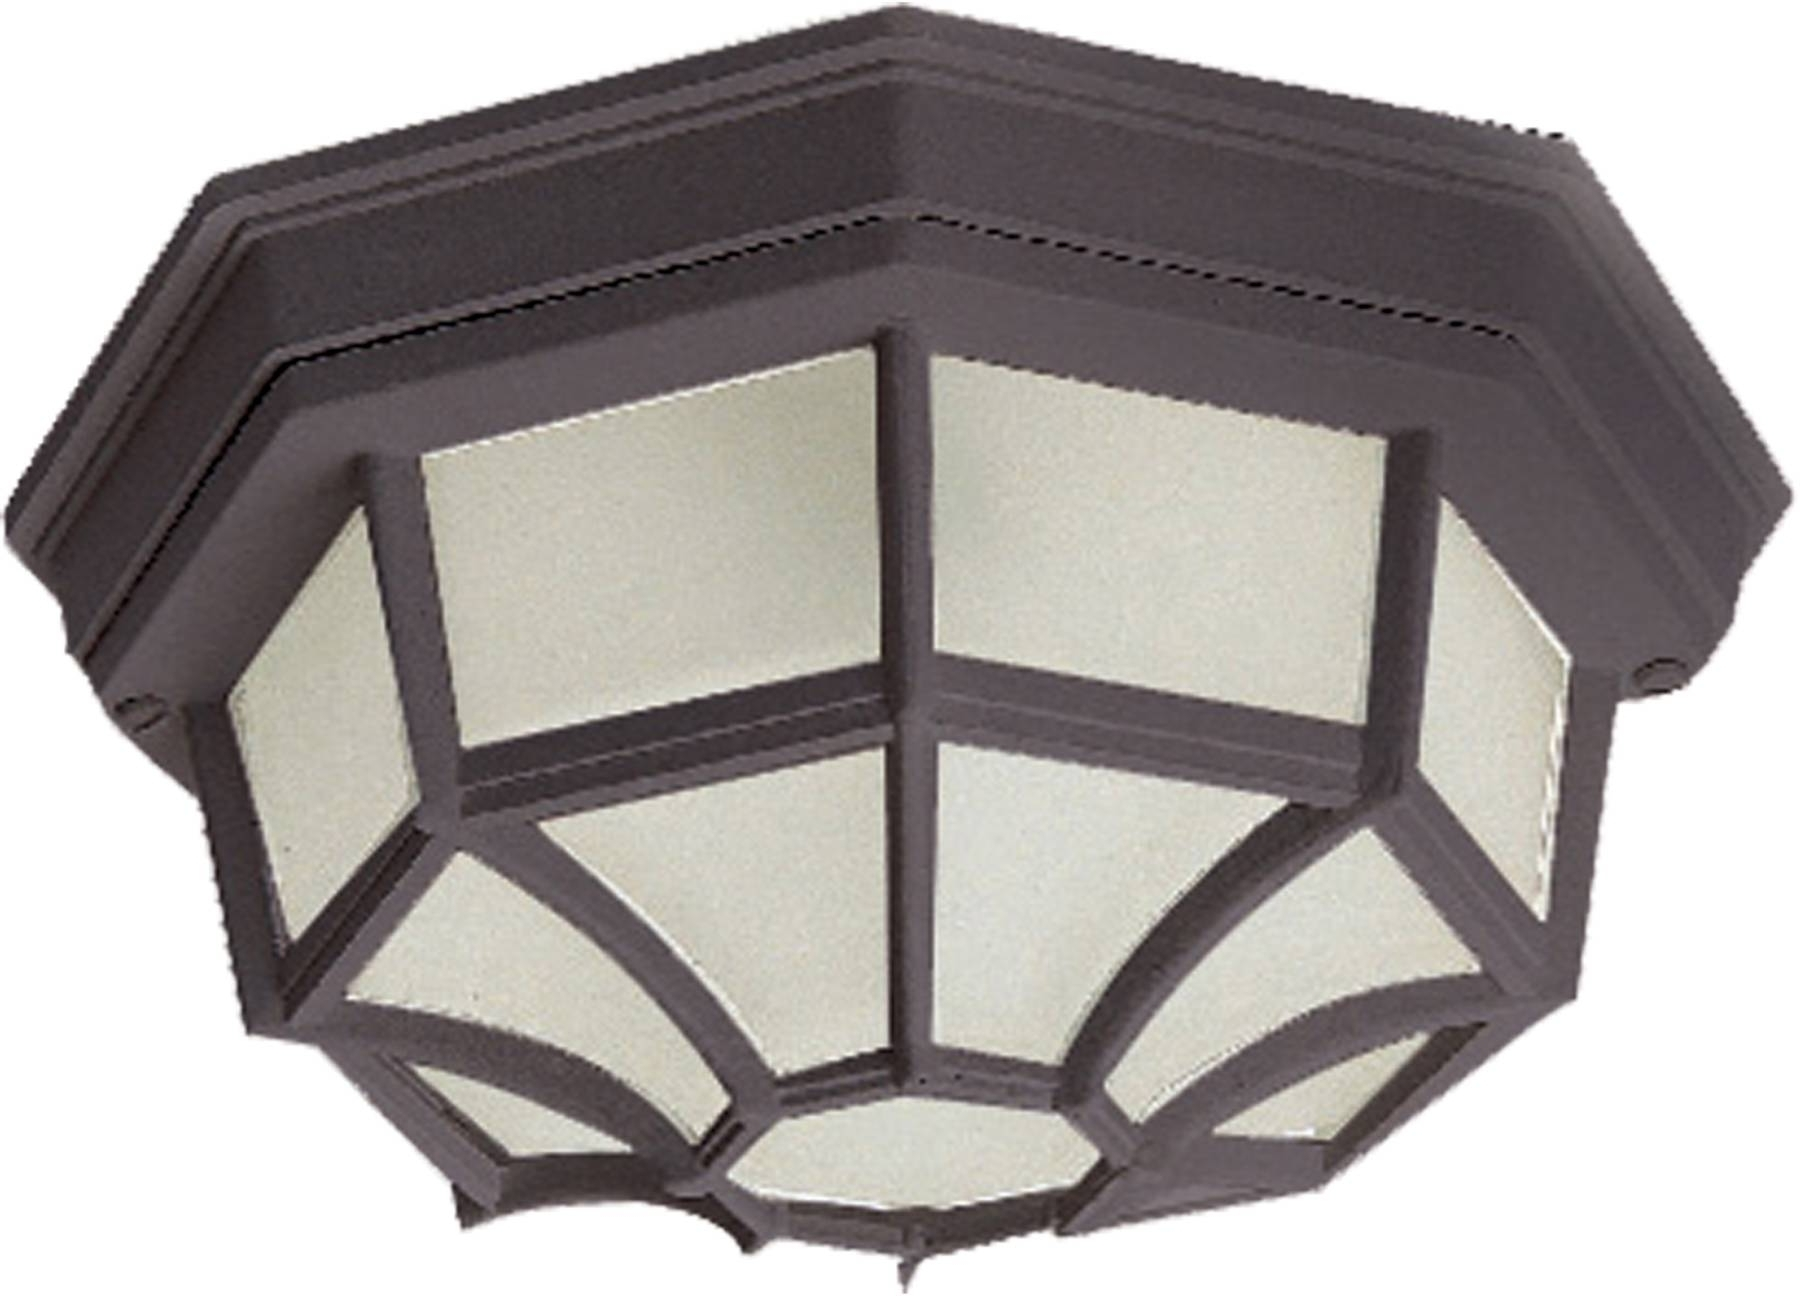 Popular Ceiling Lights : Conservative Outdoor Ceiling Lights For Porch Intended For Outdoor Ceiling Fans With Motion Sensor Light (View 19 of 20)